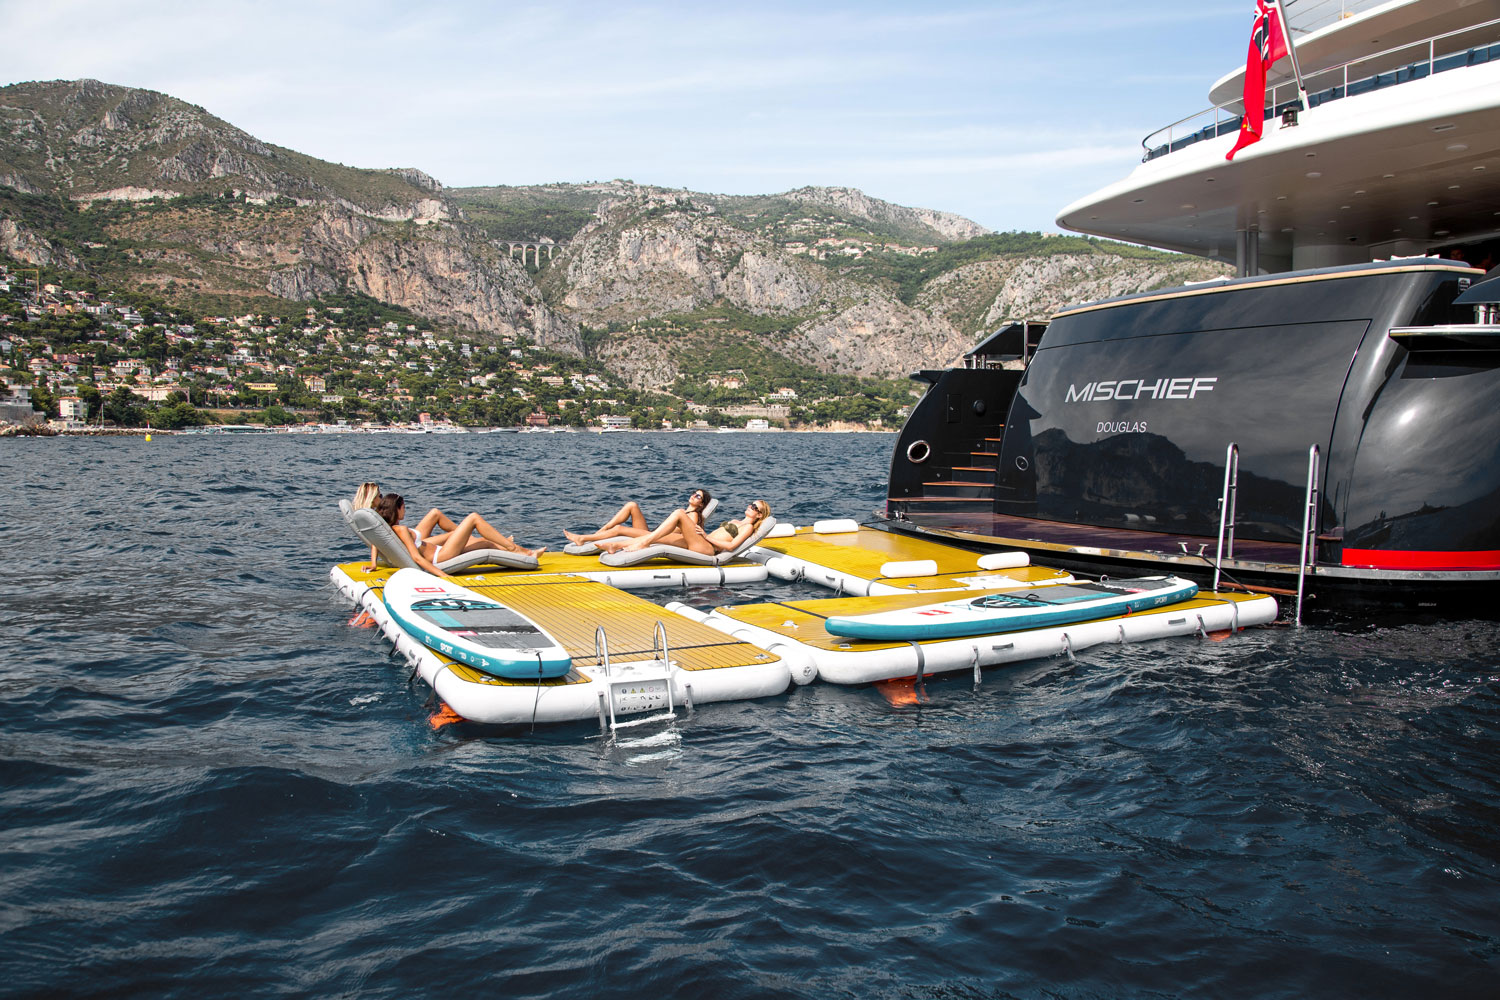 People relaxing on inflatable platforms in a square configuration - Nautibuoy Marine